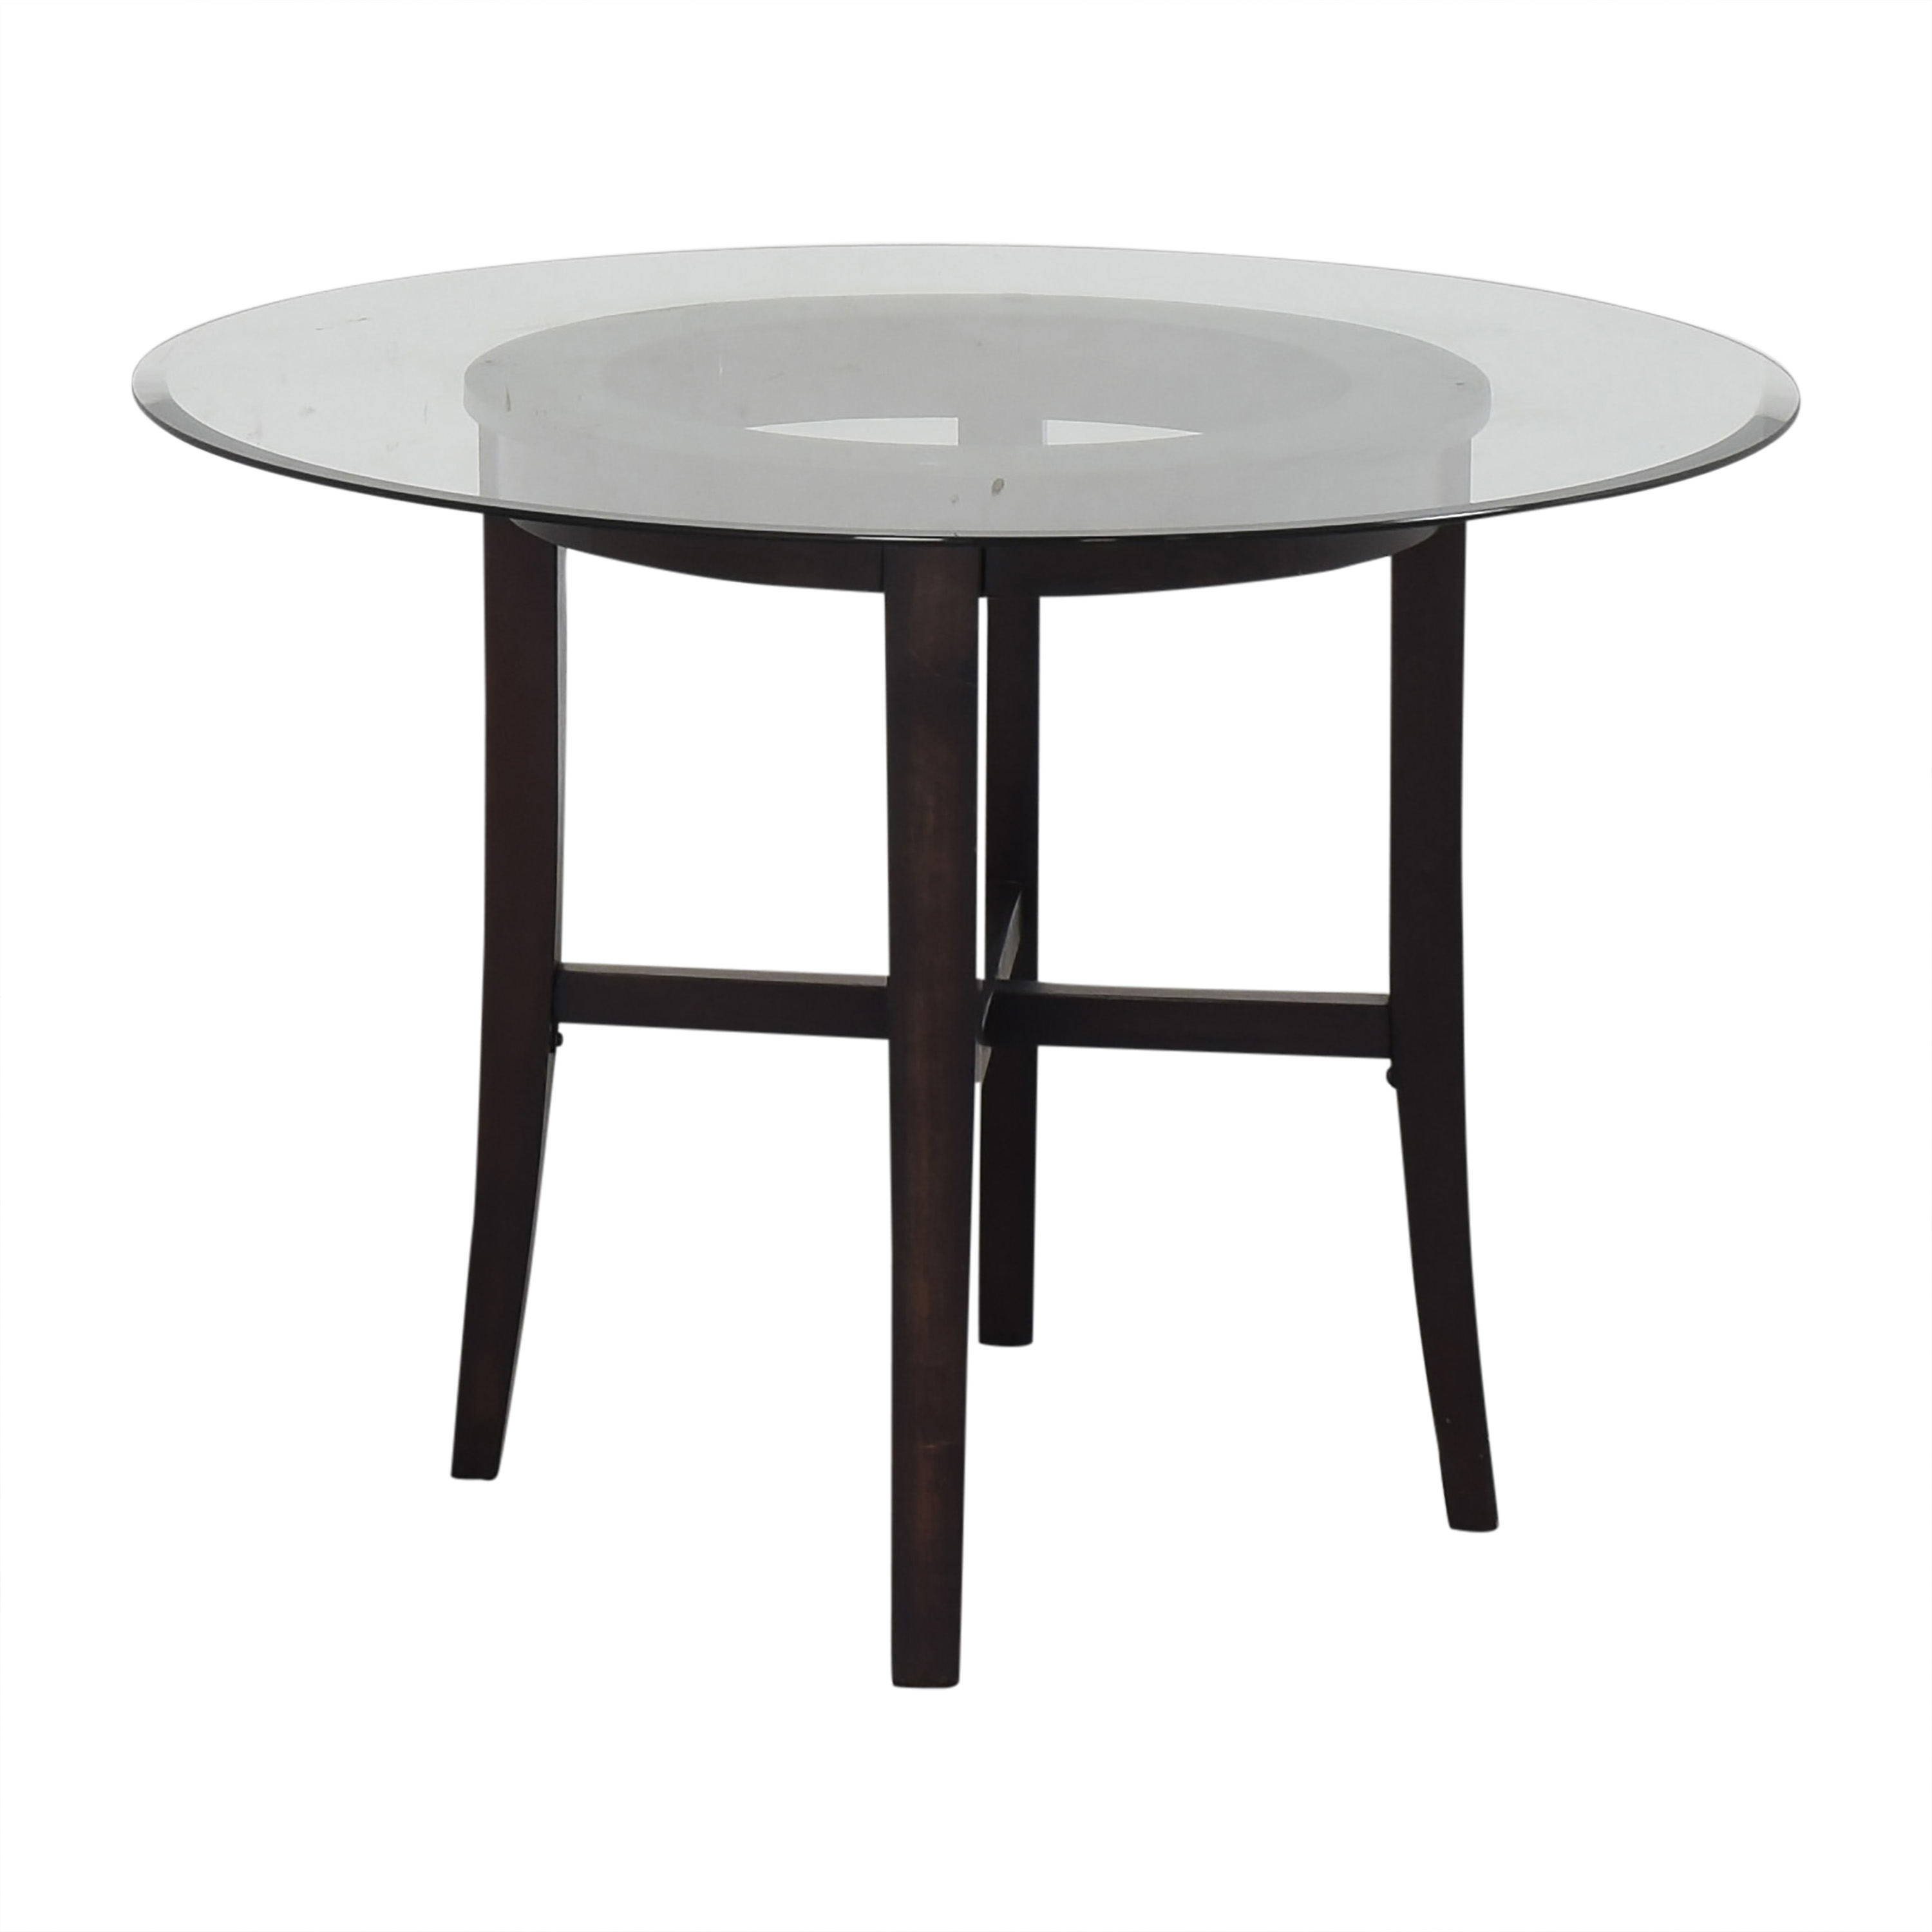 Ashley Furniture Zimmer Round Dining Table / Dinner Tables